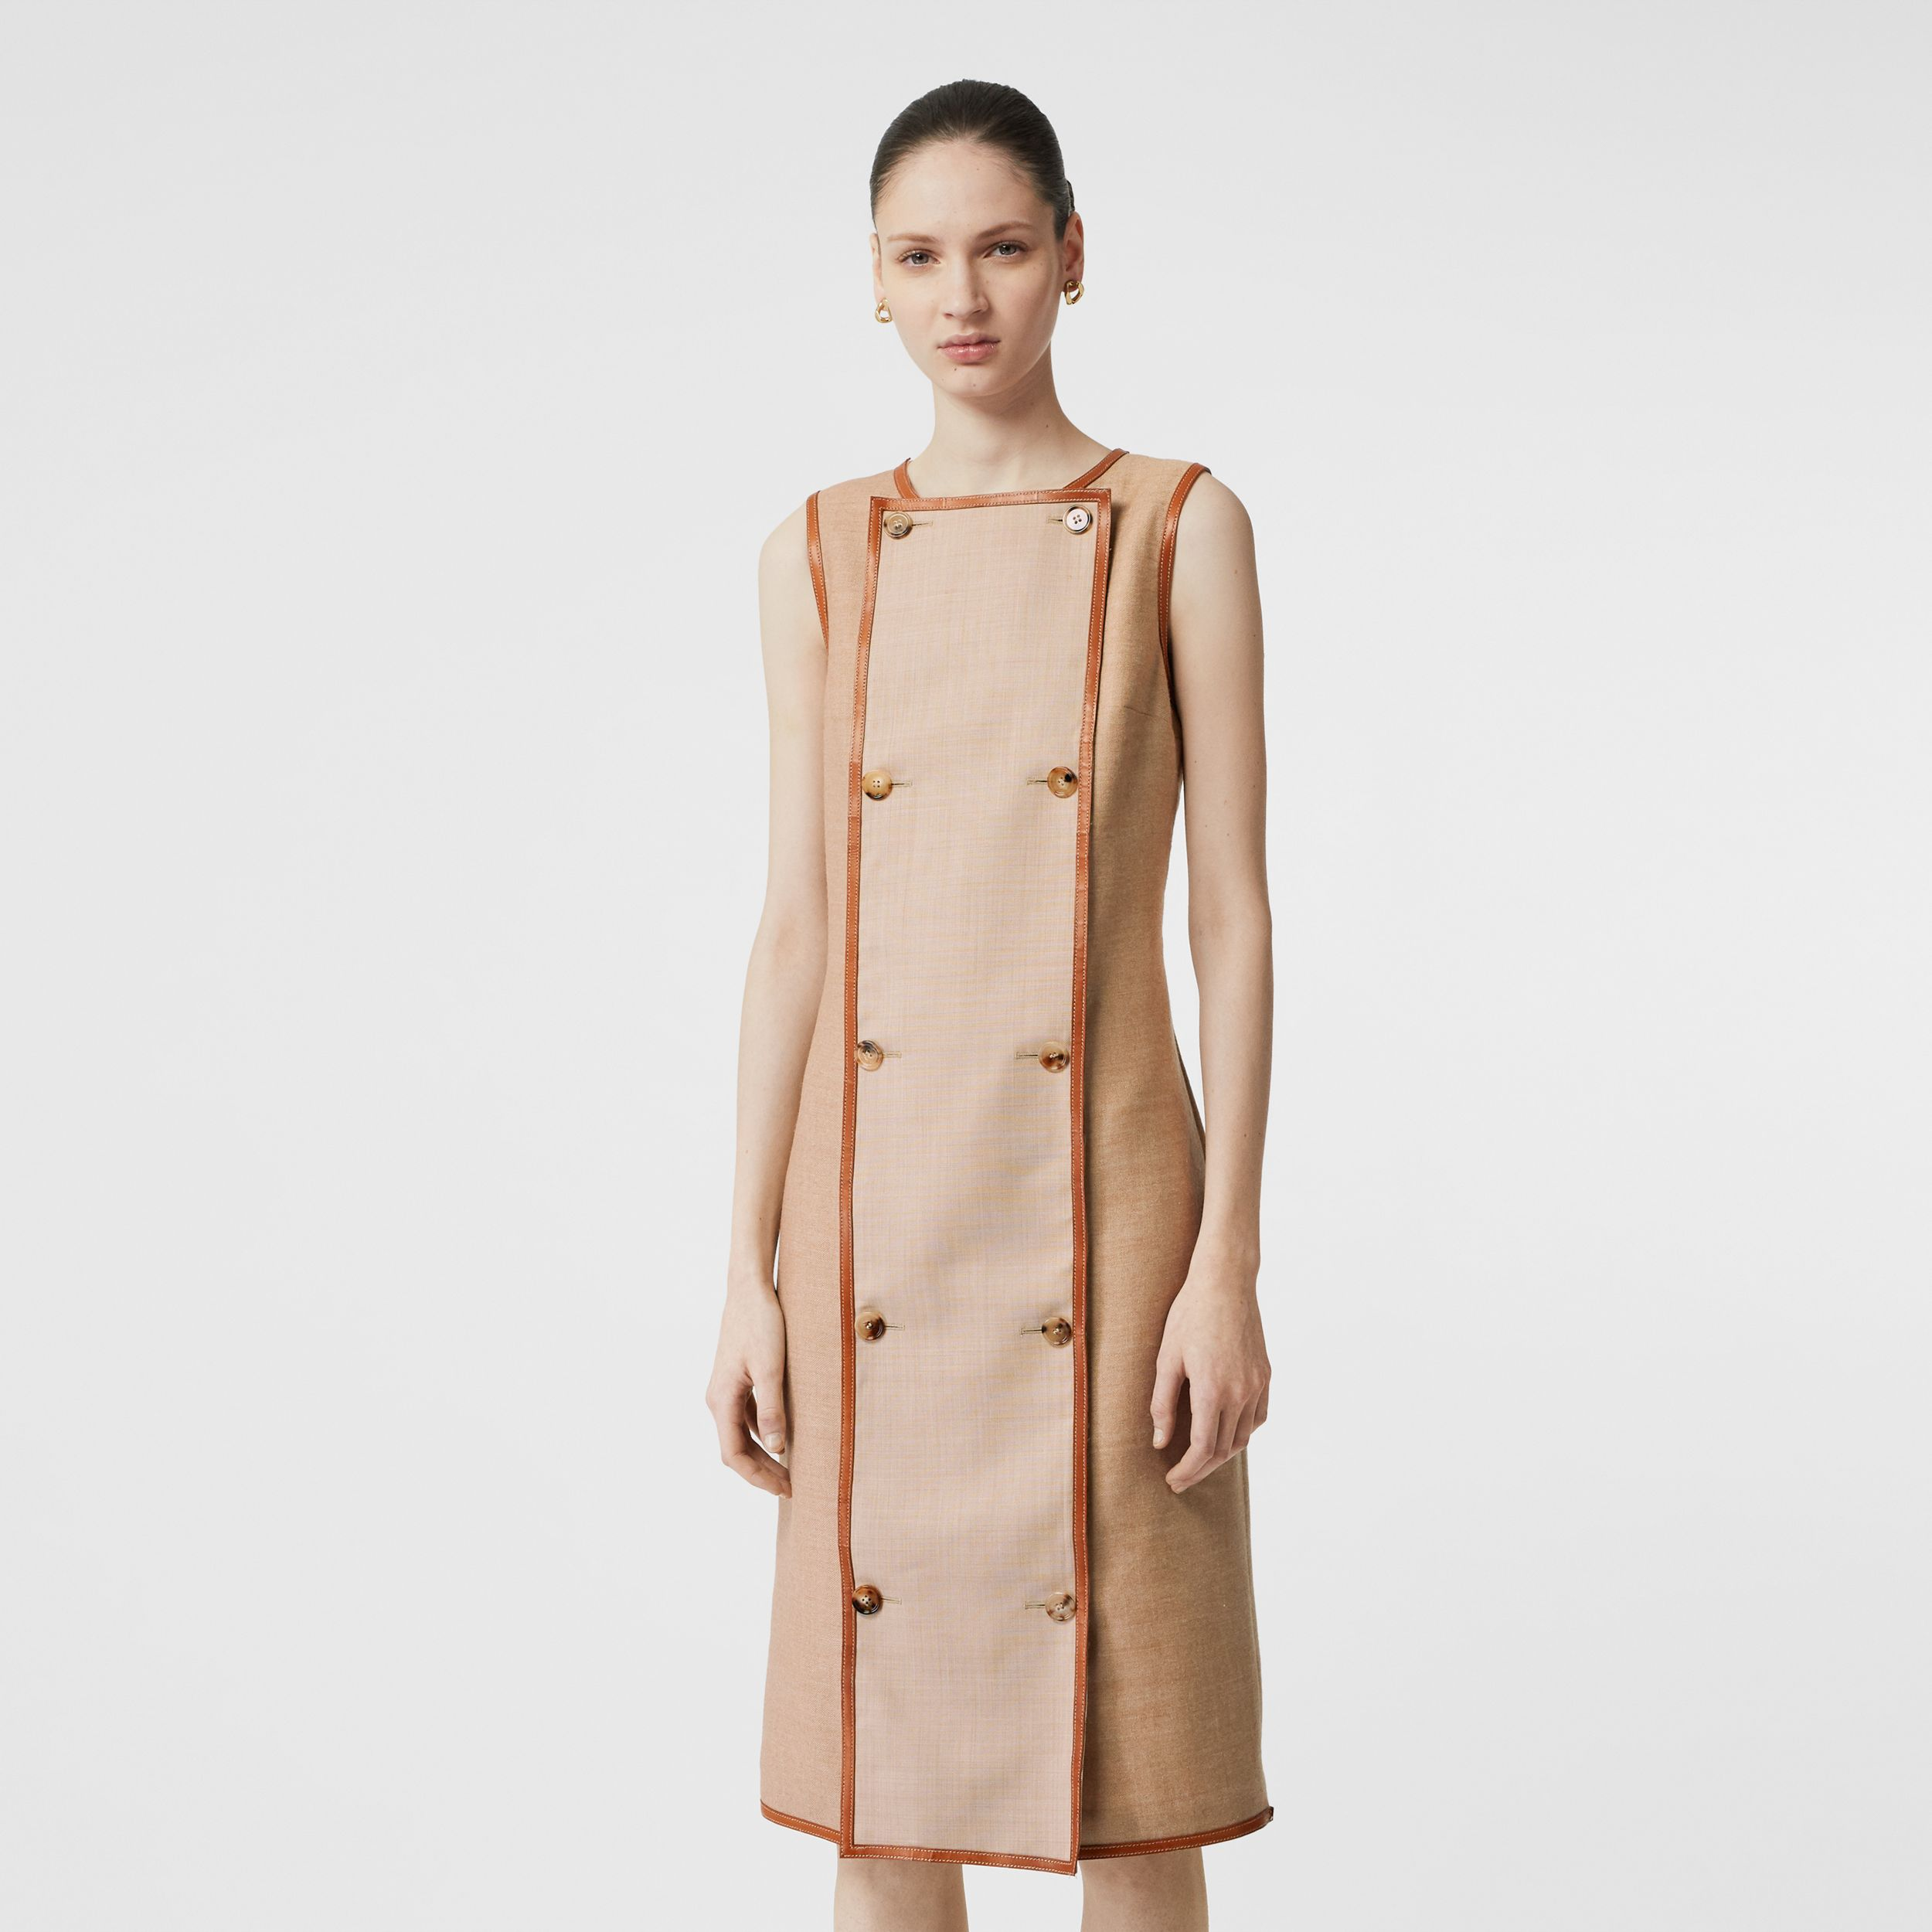 Button Panel Detail Wool Blend Shift Dress in Biscuit - Women | Burberry Canada - 1